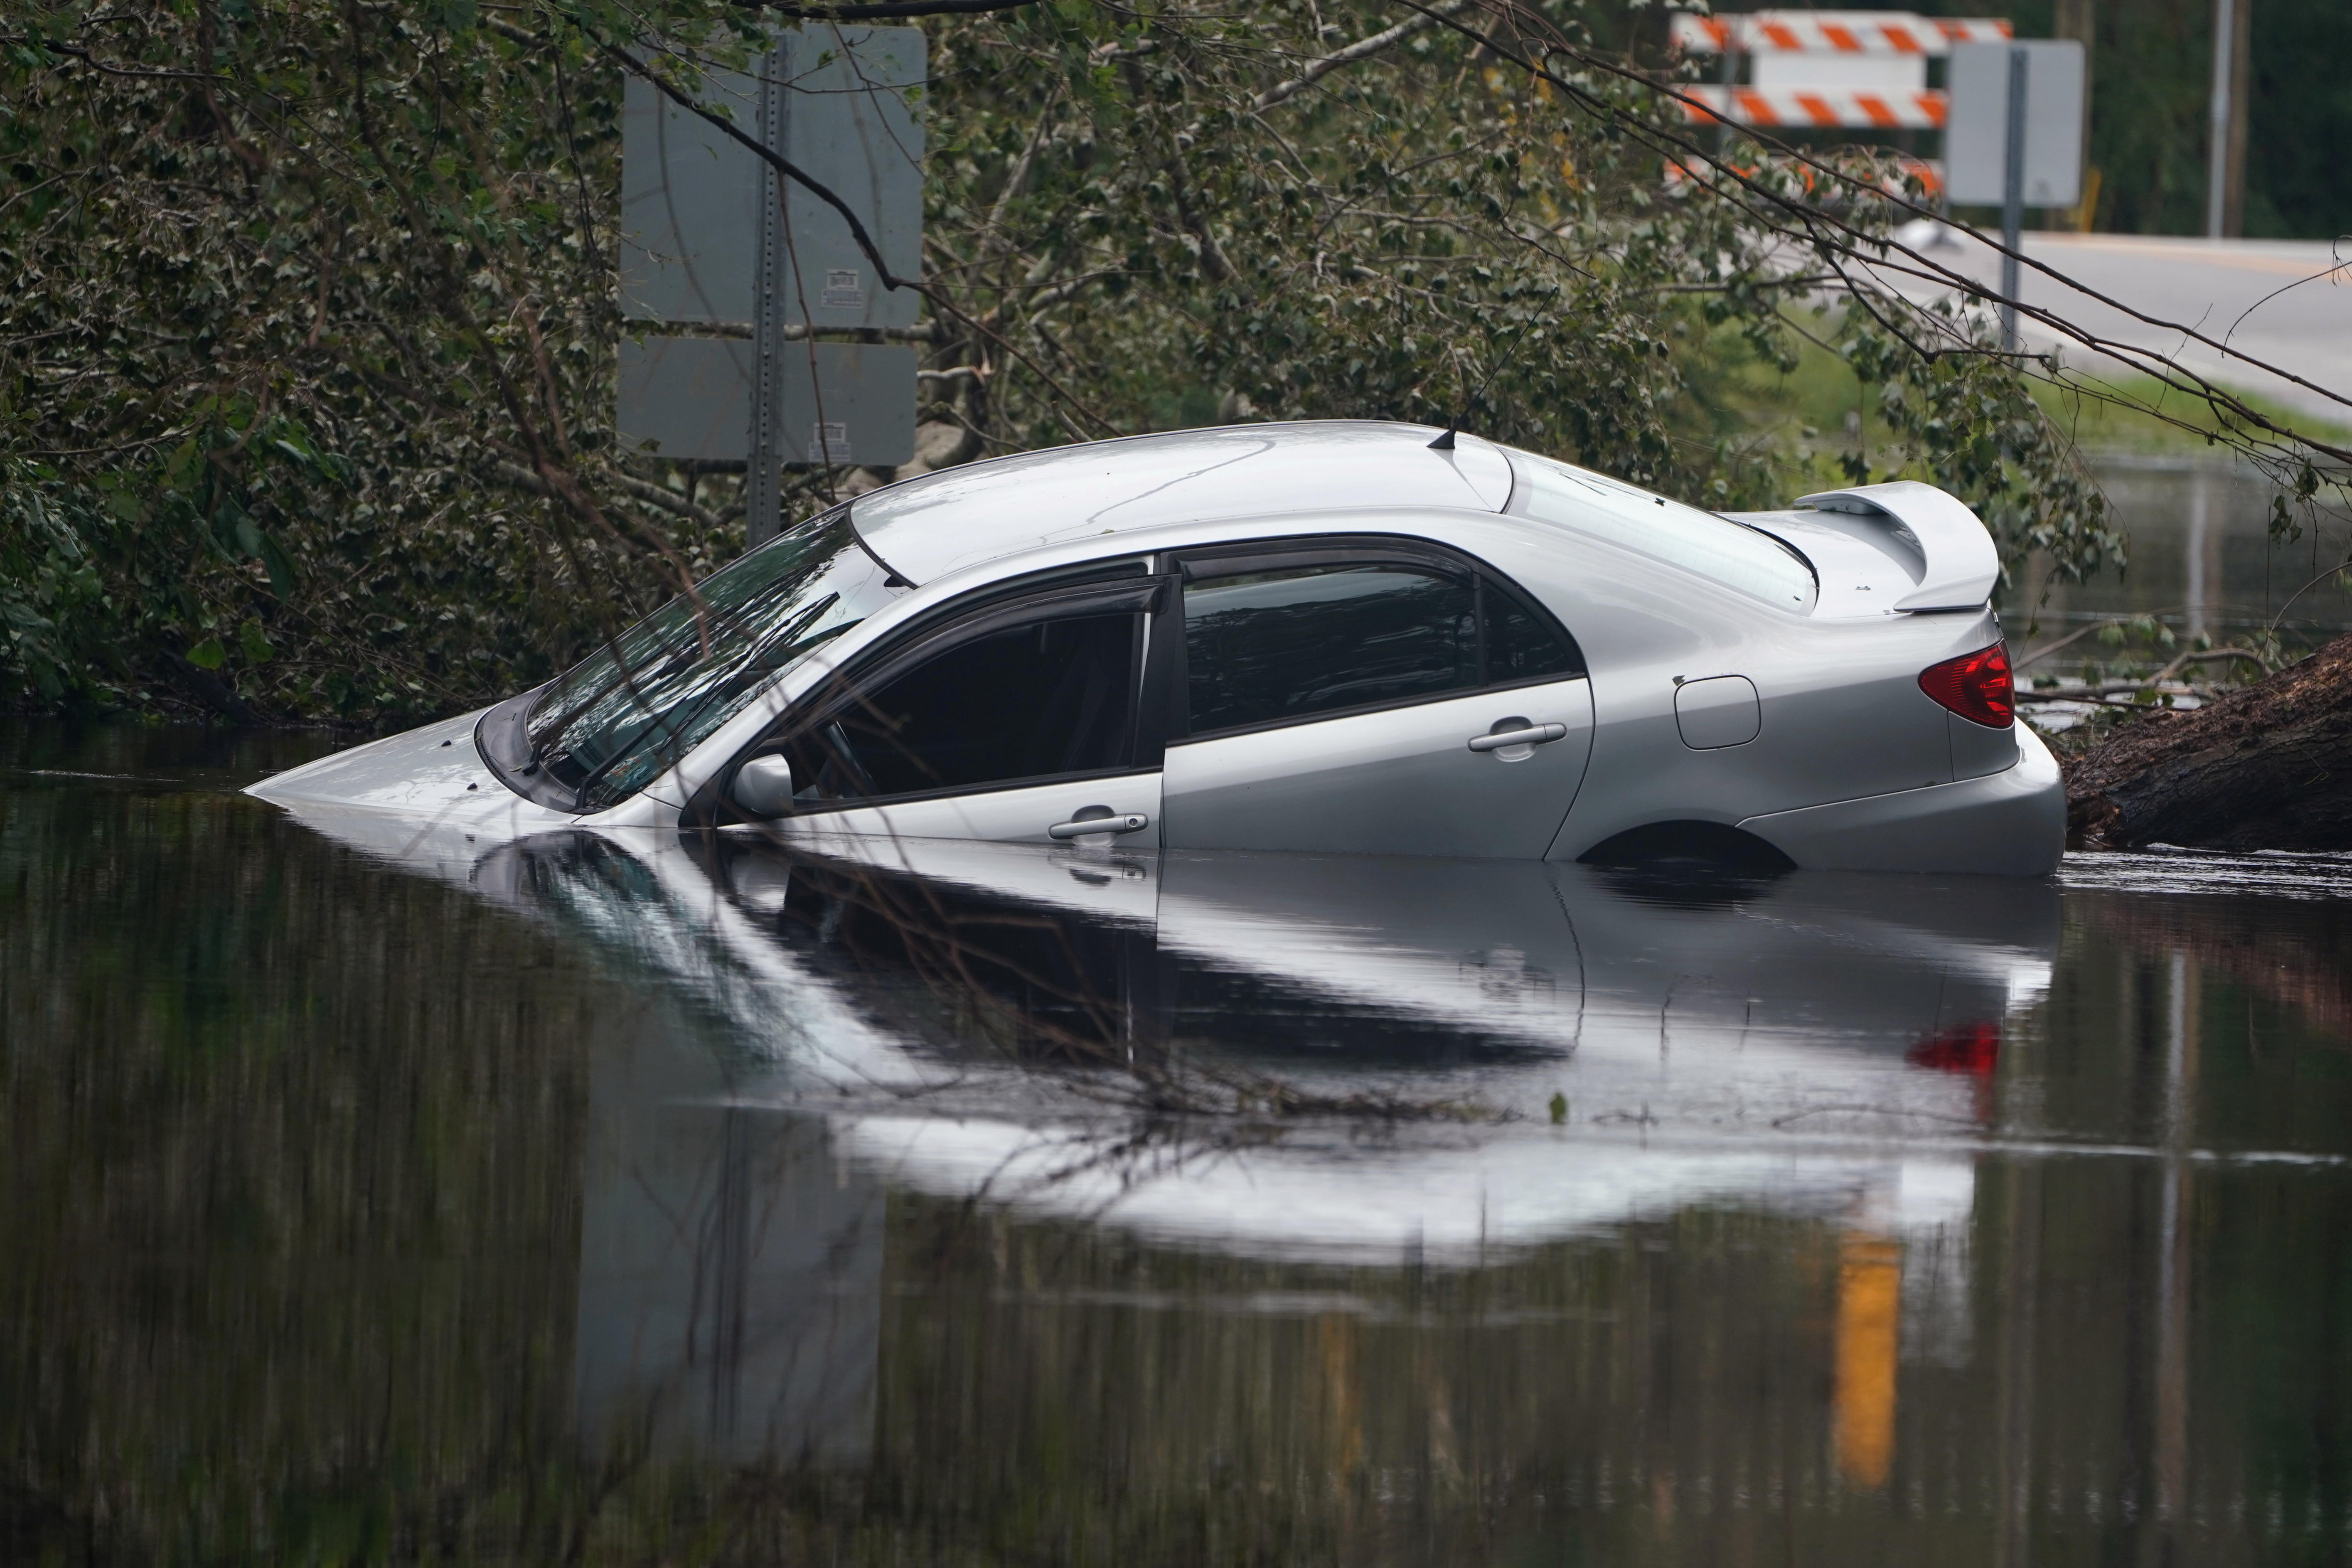 A partially submerged car is pictured on a flooded street after Hurricane Florence struck Piney Green, North Carolina, U.S., September 16, 2018.